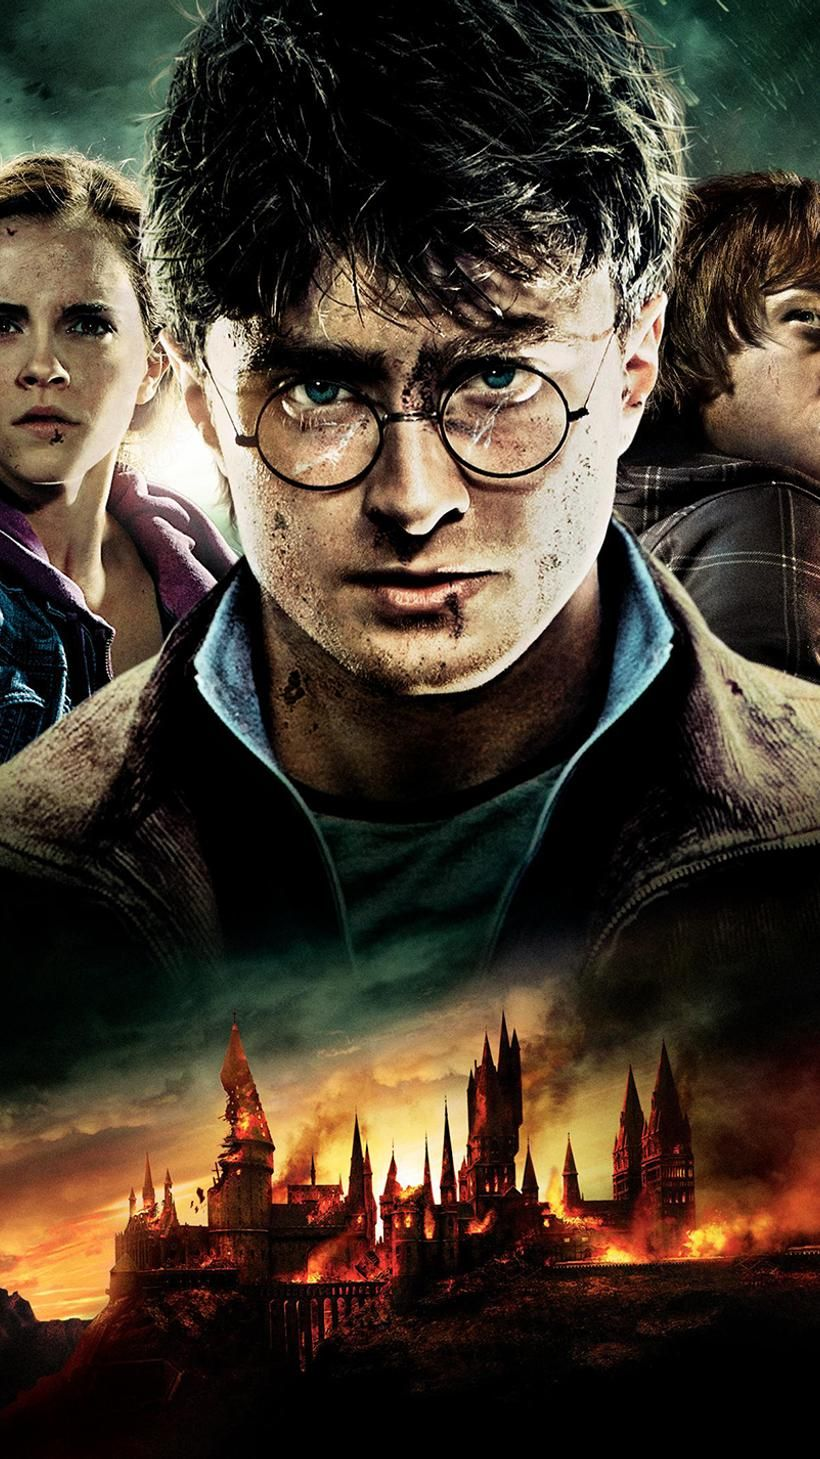 Harry Potter And The Deathly Hallows Part 2 2011 Phone Wallpaper Moviemania Harry Potter Tumblr Harry Potter Wallpaper Harry Potter Images